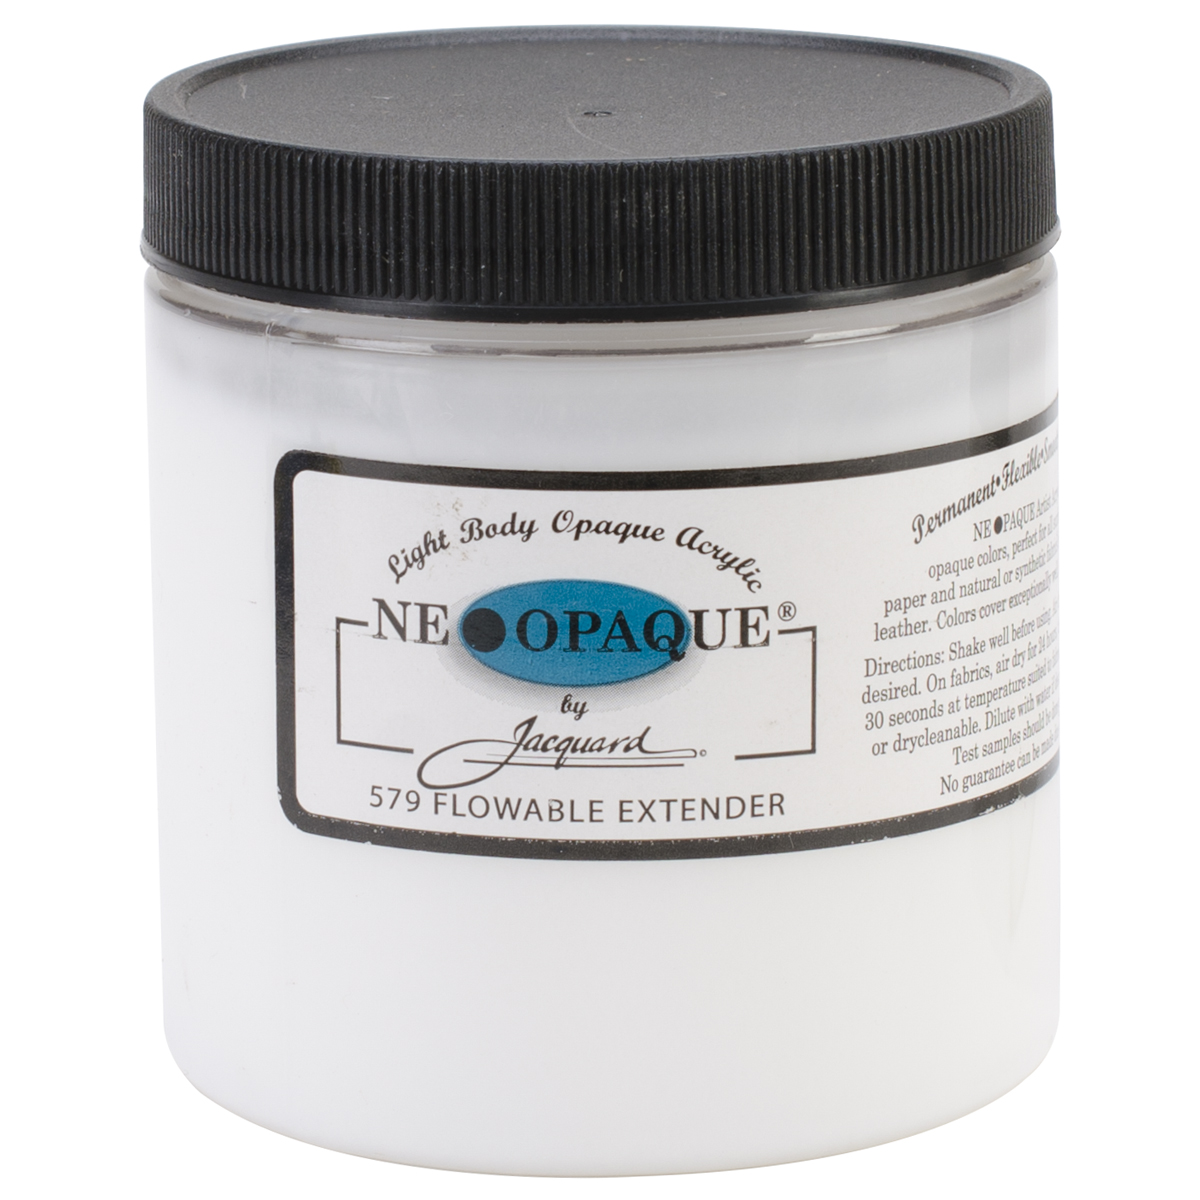 Jacquard Neopaque Flowable Extender Paint